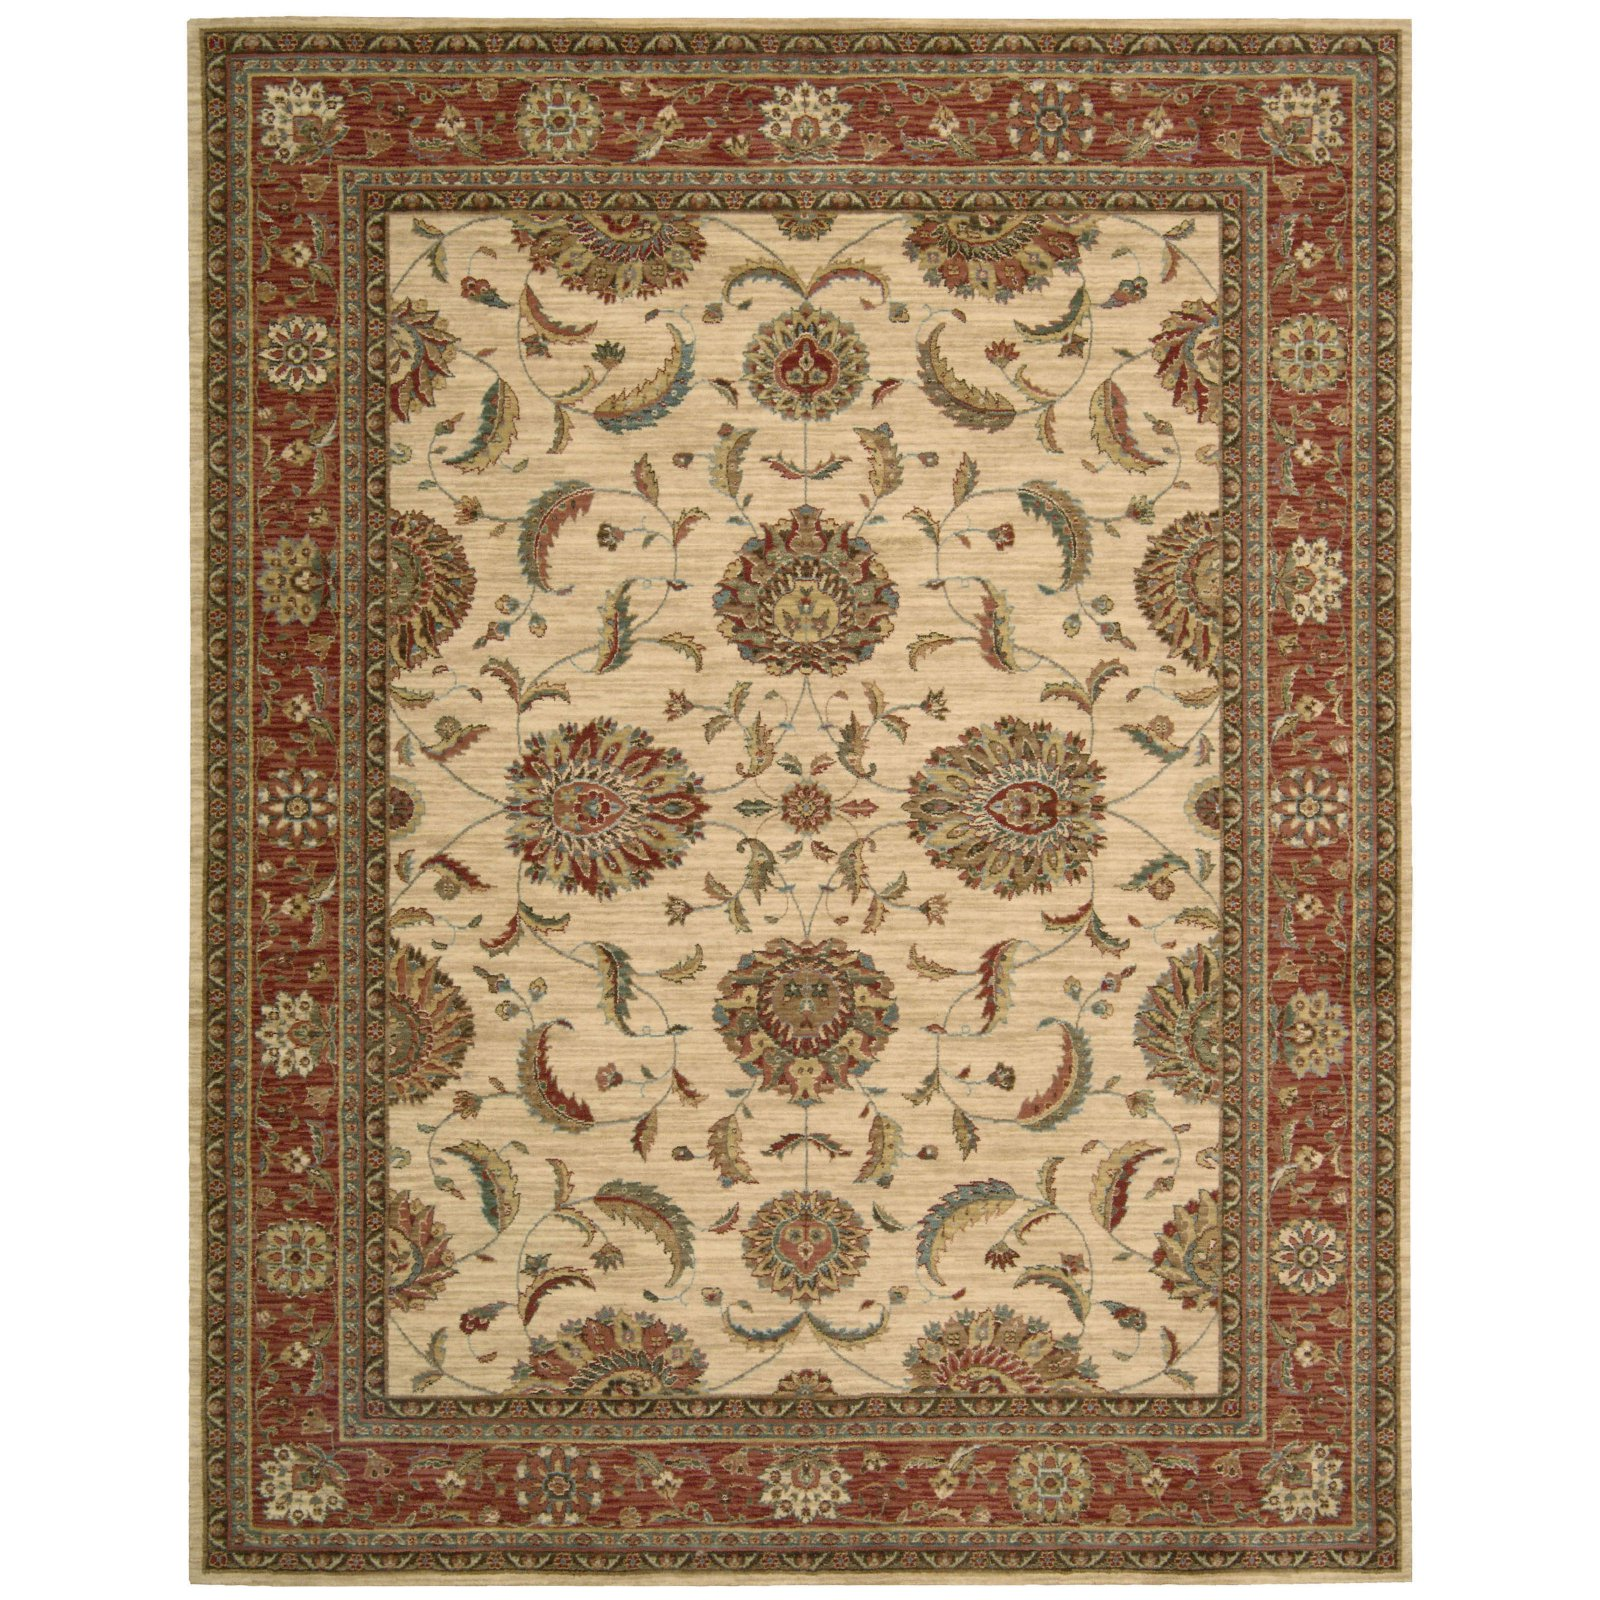 Nourison Living Treasures LI04 Oriental Rug - Ivory Red